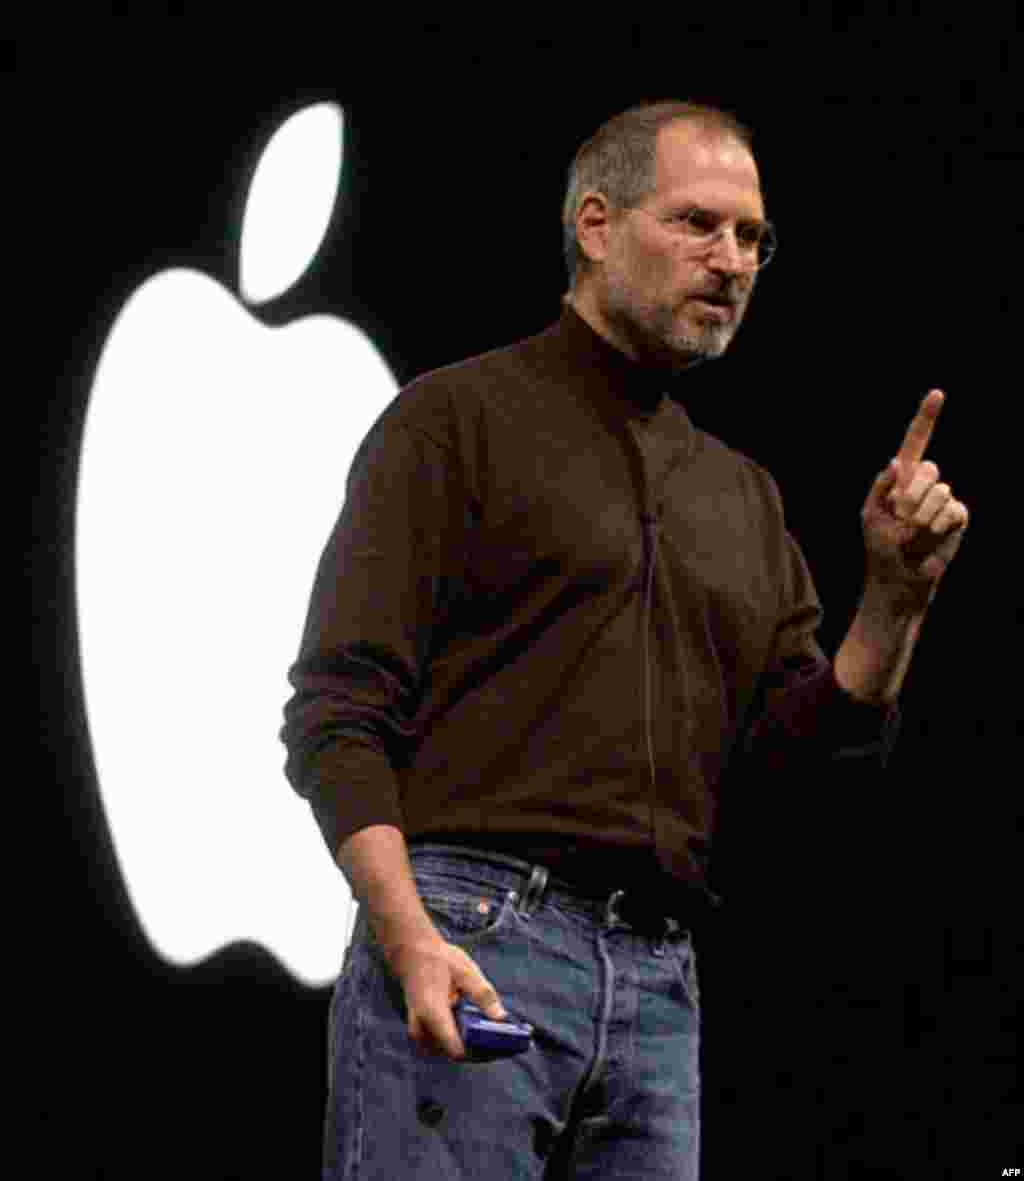 Apple Computer, Inc., CEO Steve Jobs gestures Thursday, Oct. 16. 2003, during a media presentation in San Francisco. In a move to reach the broader market of Microsoft-platform users, Jobs unveiled a fully Windows-compatible Apple iTunes Music Store, whic